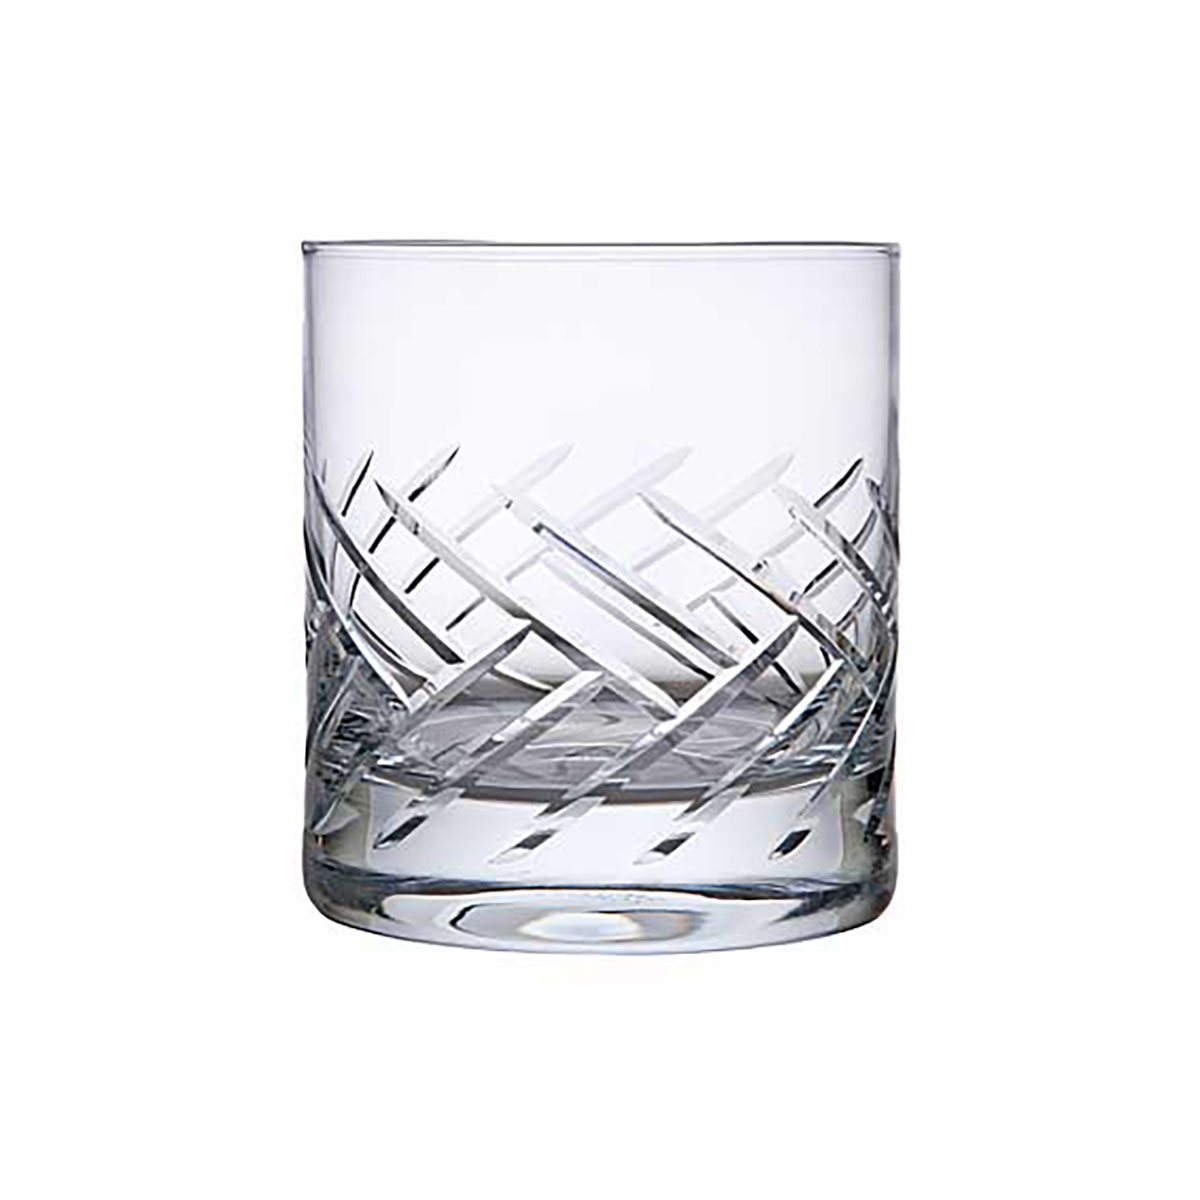 Schott Zwiesel Tritan Crystal, Distil Arran Crystal Old Fashioned Tumbler Glass, Set of Six